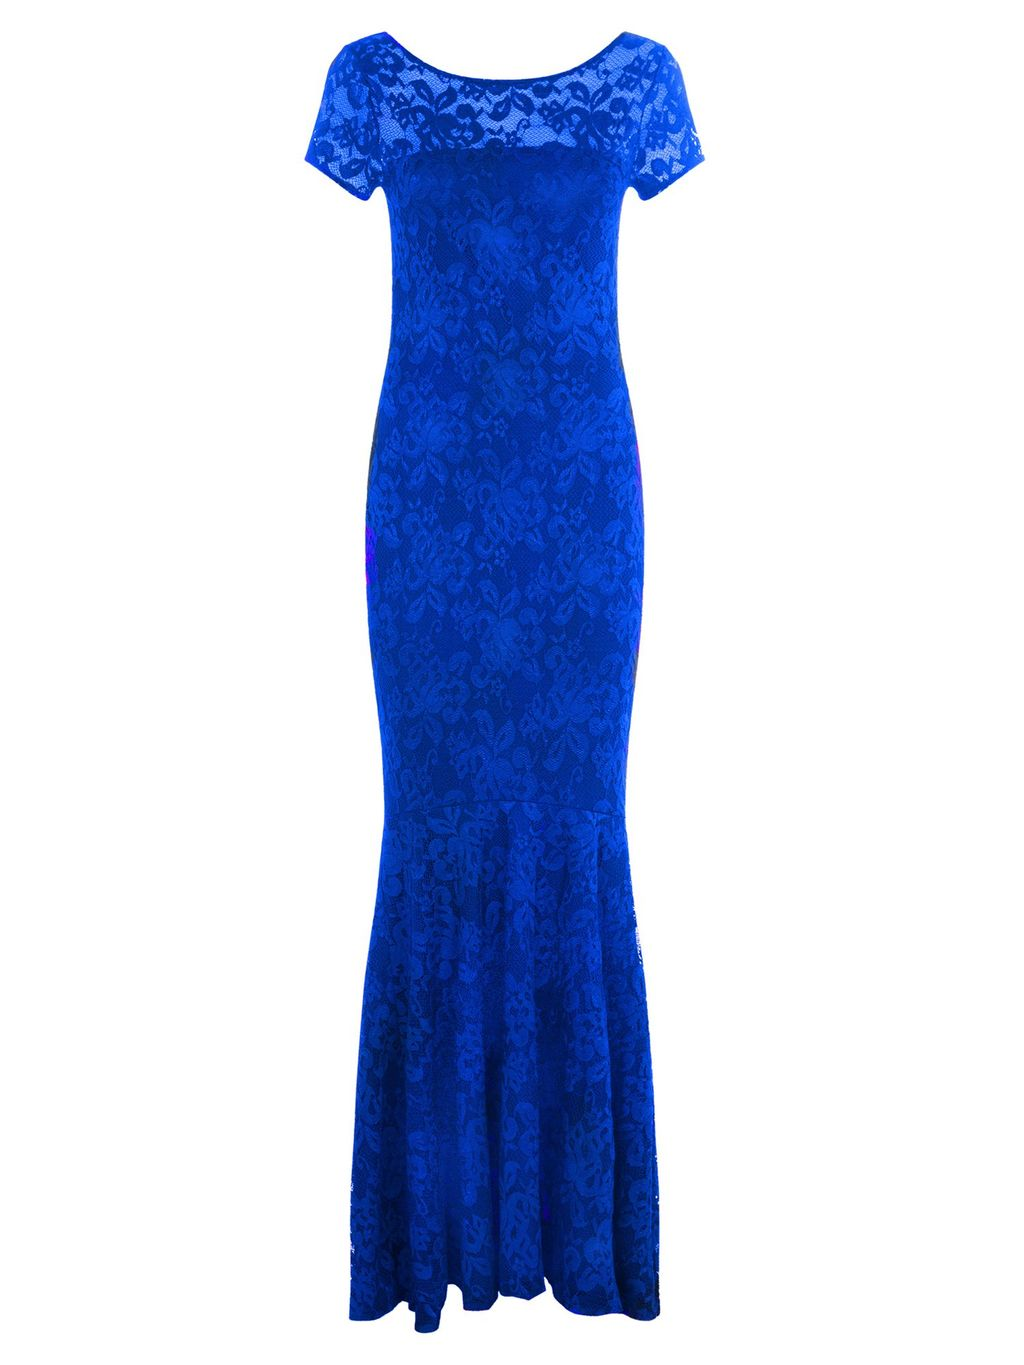 Long Lace Dress With Cap Sleeve, Royal Blue - neckline: round neck; predominant colour: royal blue; occasions: evening, occasion; length: floor length; fit: body skimming; fibres: polyester/polyamide - stretch; style: fishtail; sleeve length: short sleeve; sleeve style: standard; texture group: lace; pattern type: fabric; pattern size: standard; pattern: patterned/print; embellishment: lace; season: s/s 2016